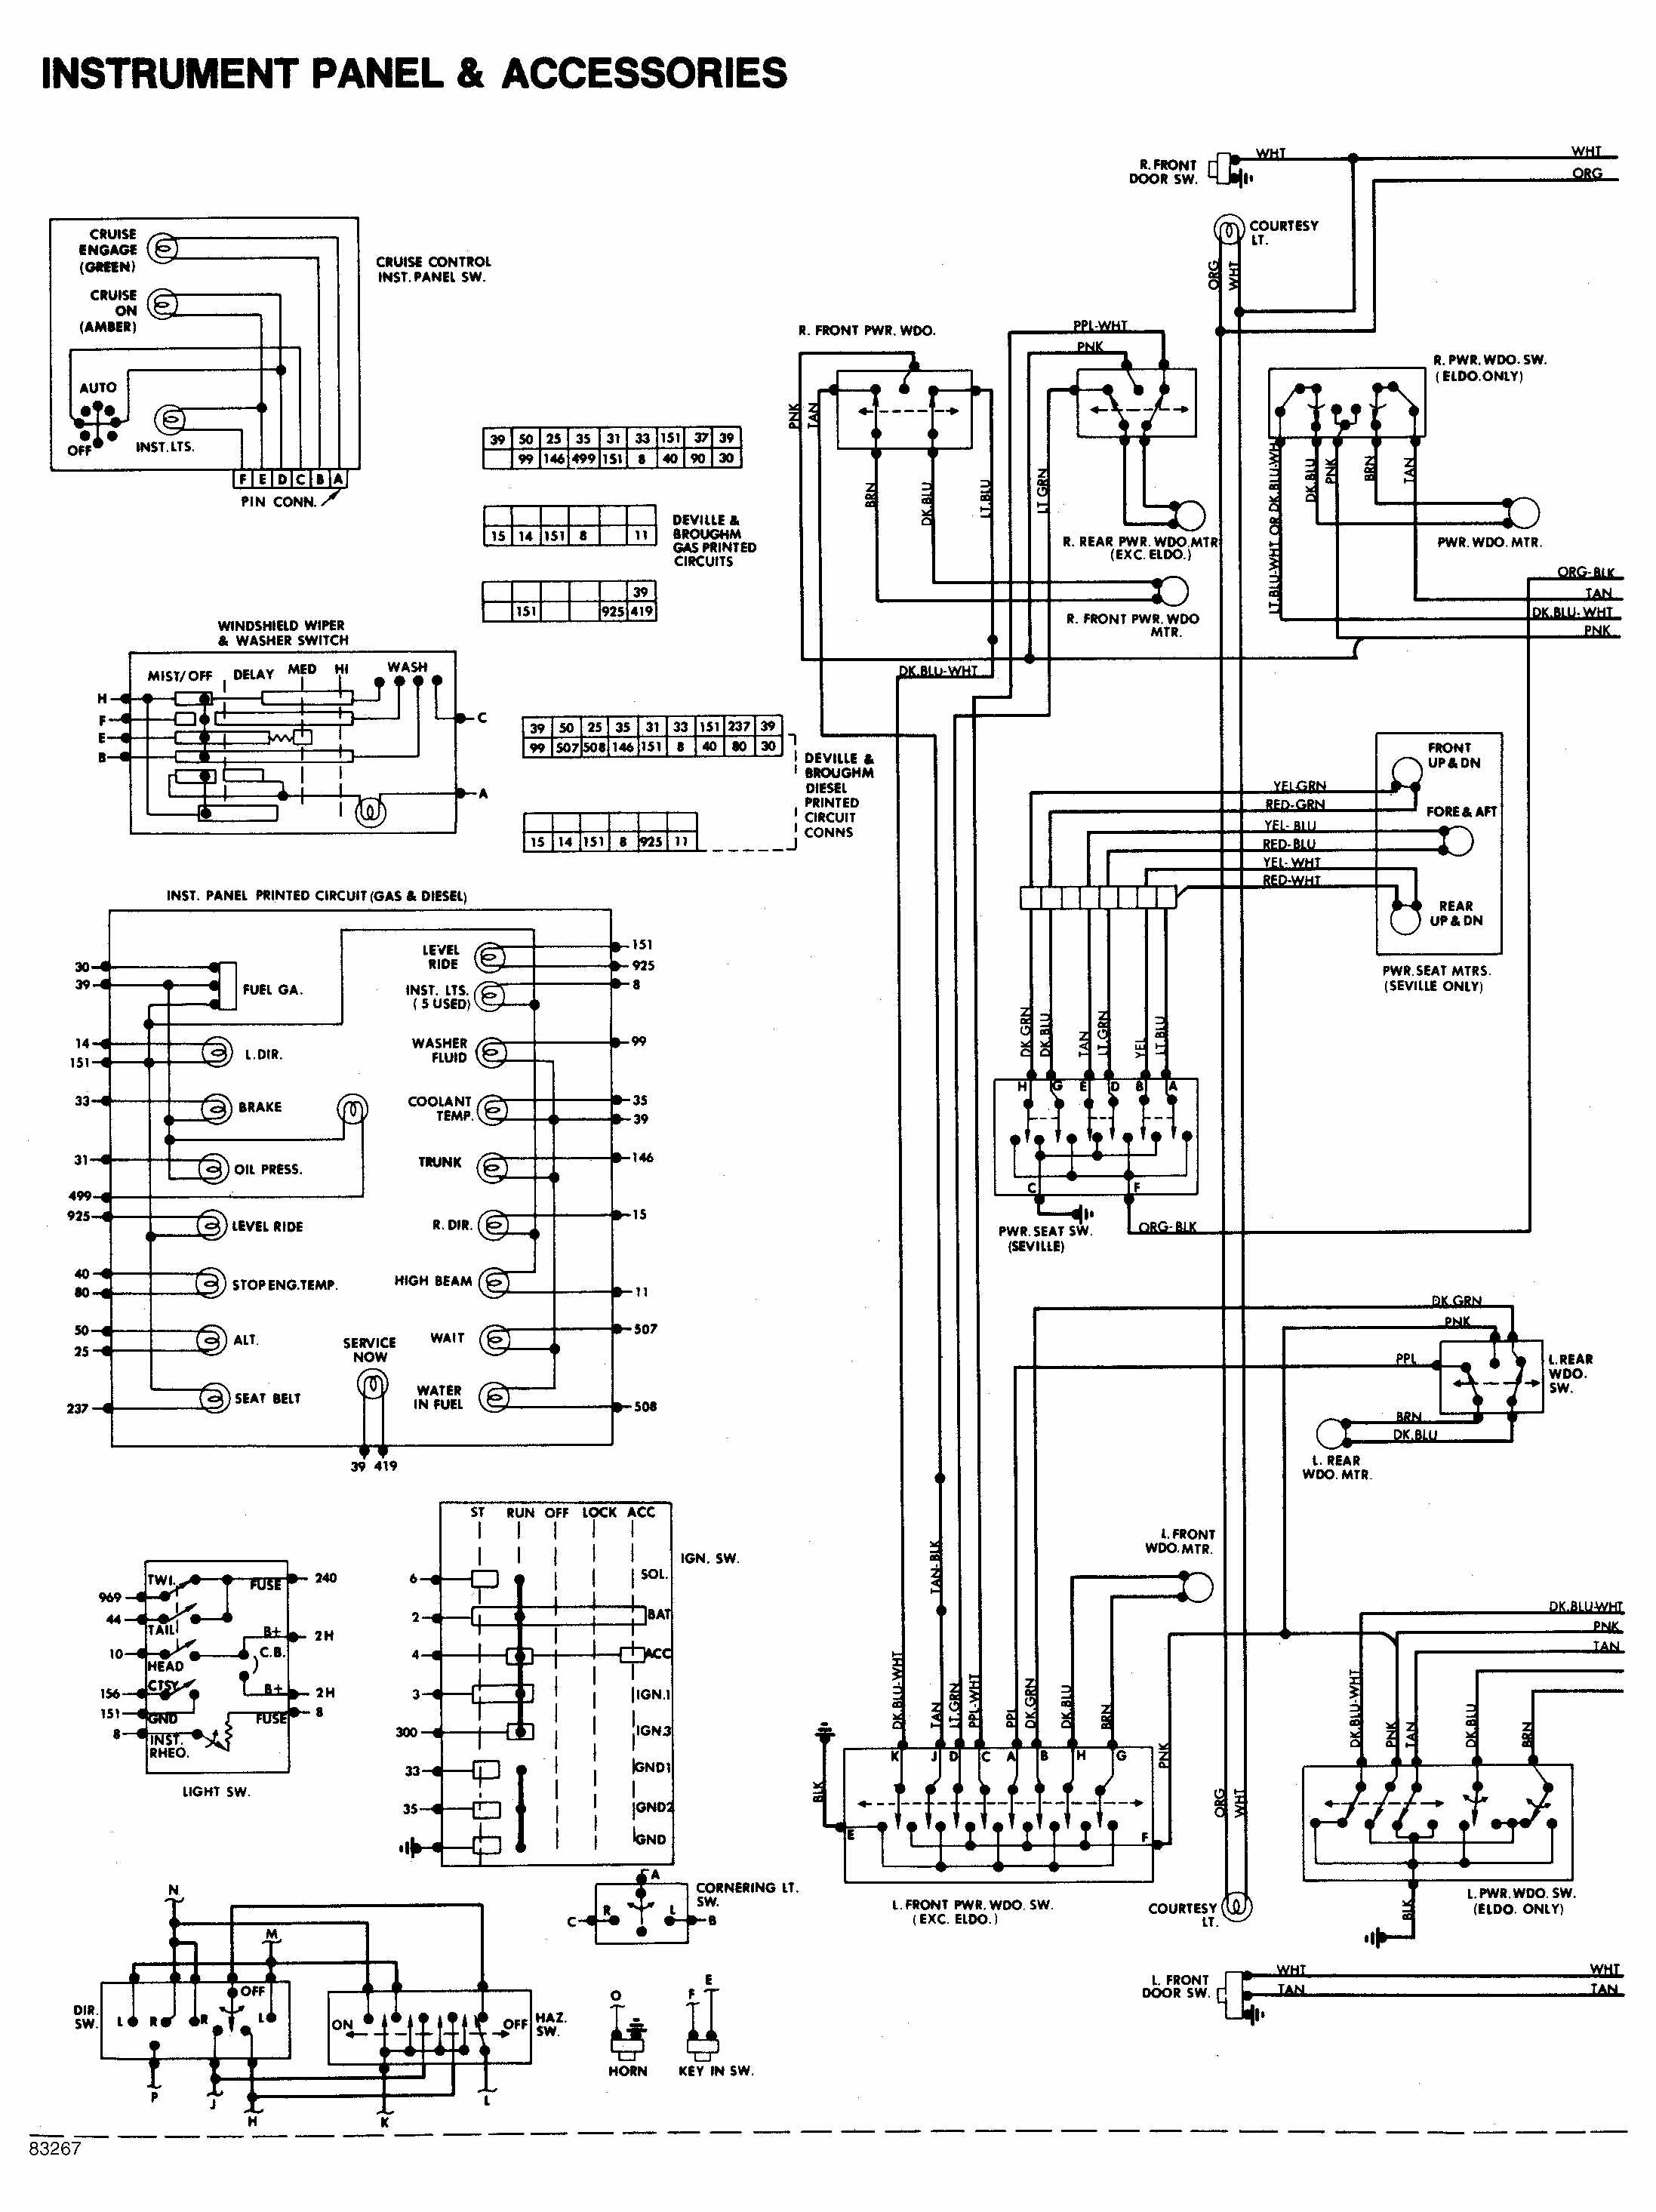 84 Corvette Under Hood Wiring Diagram Get Free Image About 71 Chevy Truck Diagrams 1984 Cadillac Deville Instrument Panel And Accessories Drawing A